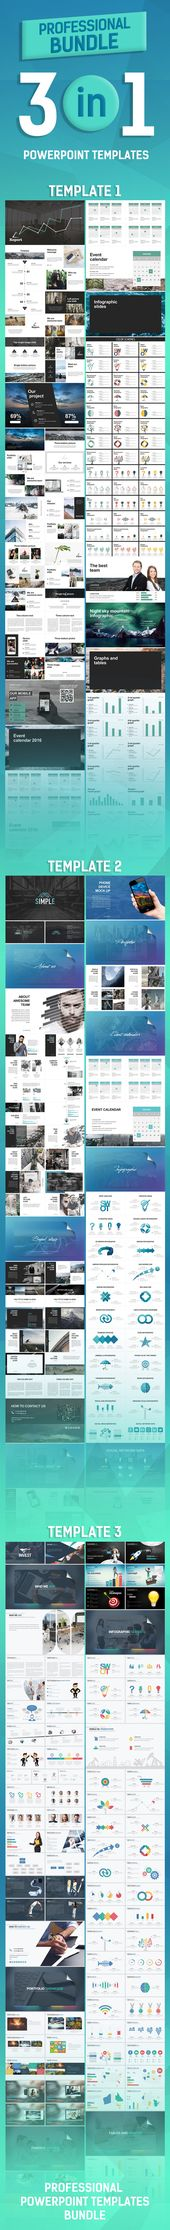 Professional Bundle Business powerpoint templates, Professional - professional powerpoint